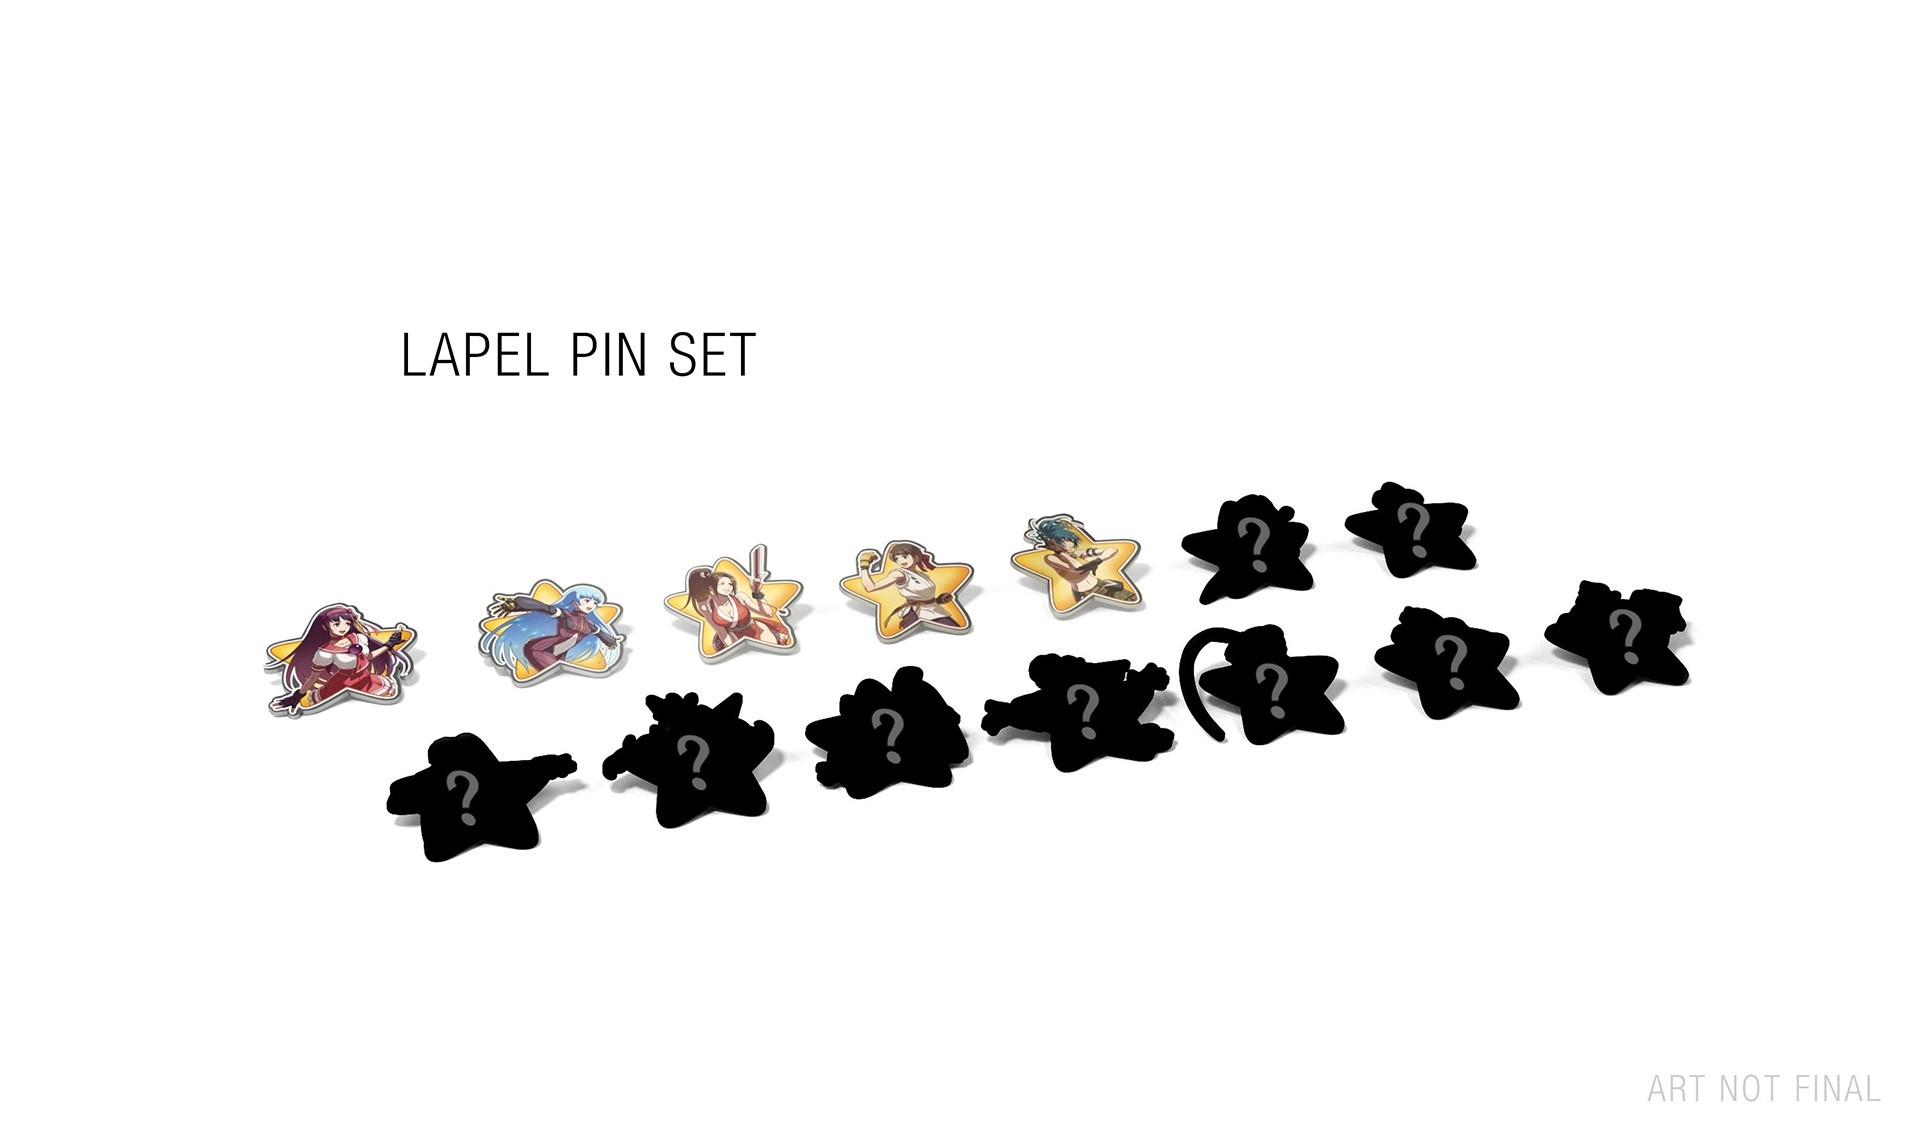 snk-heroines-tag-team-frenzy-lapel-pin-set-photo